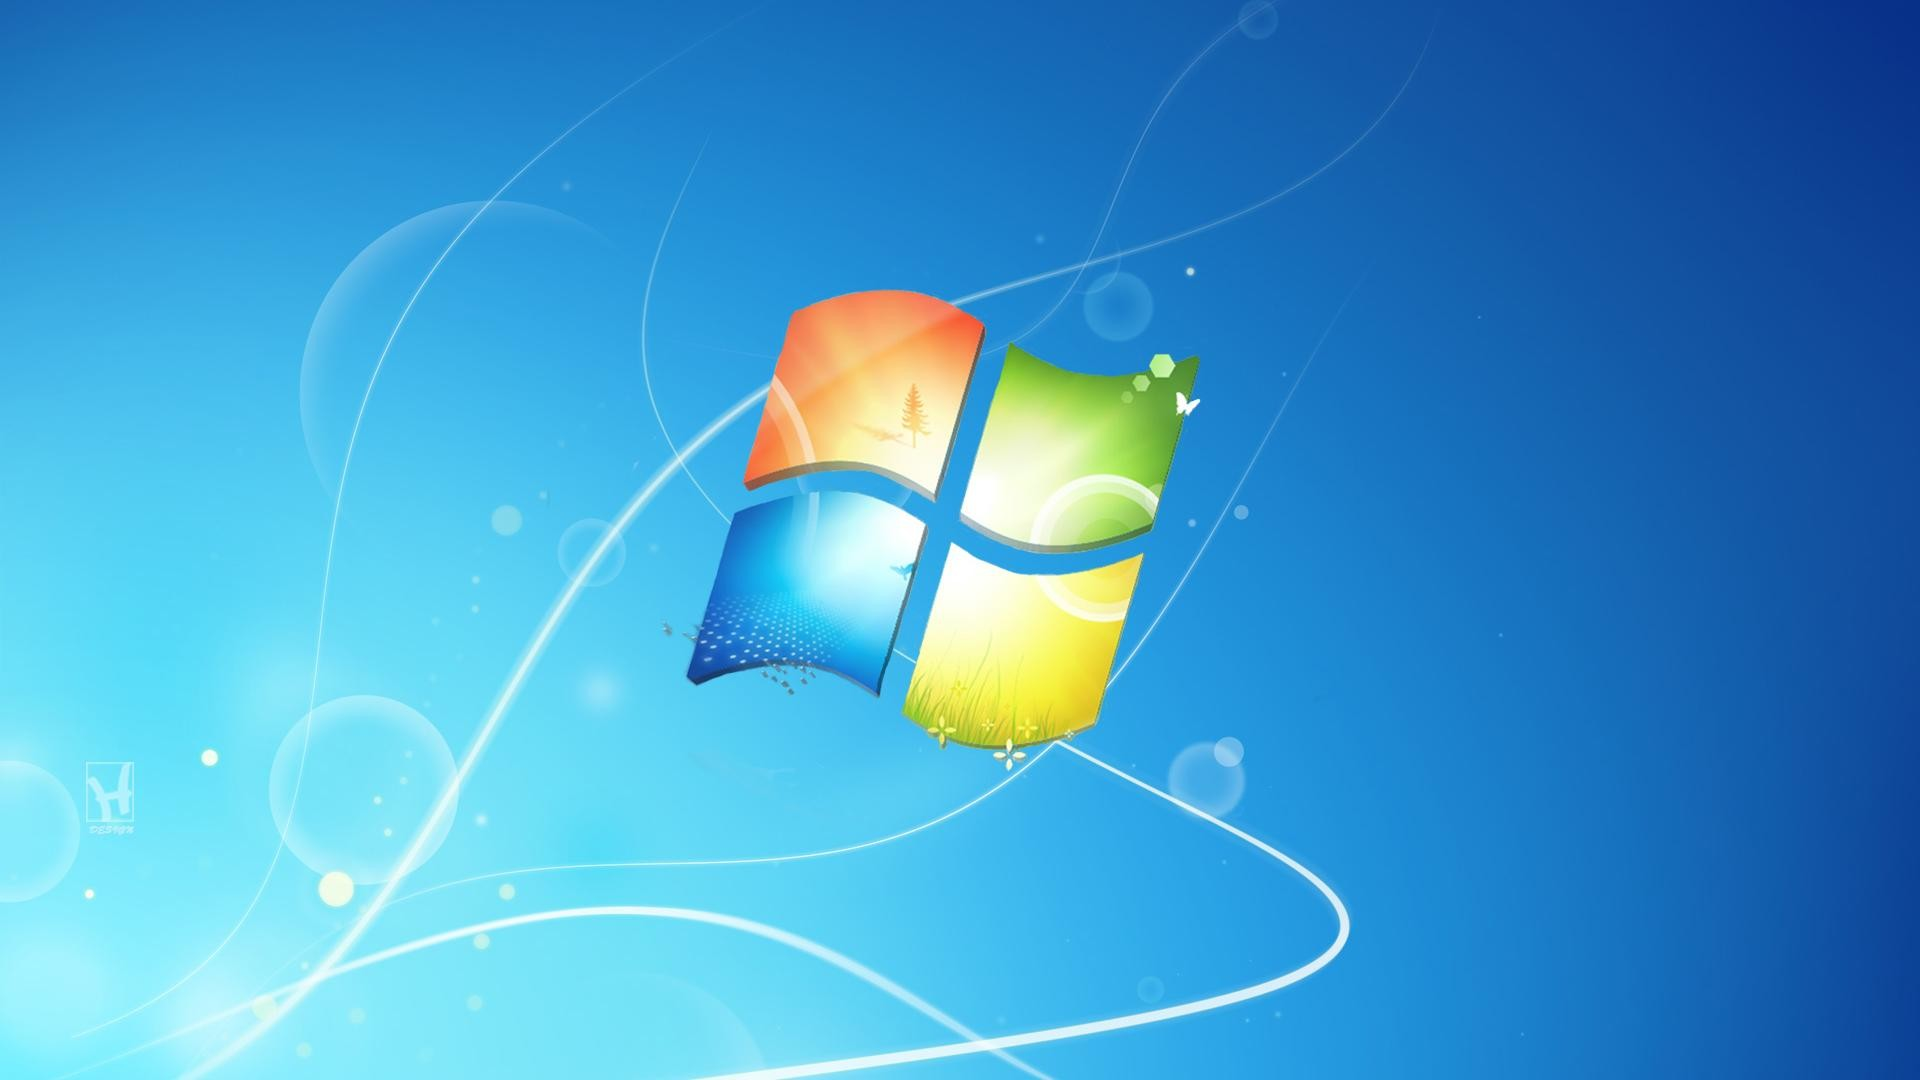 1920x1080 cool blue background windows xp system